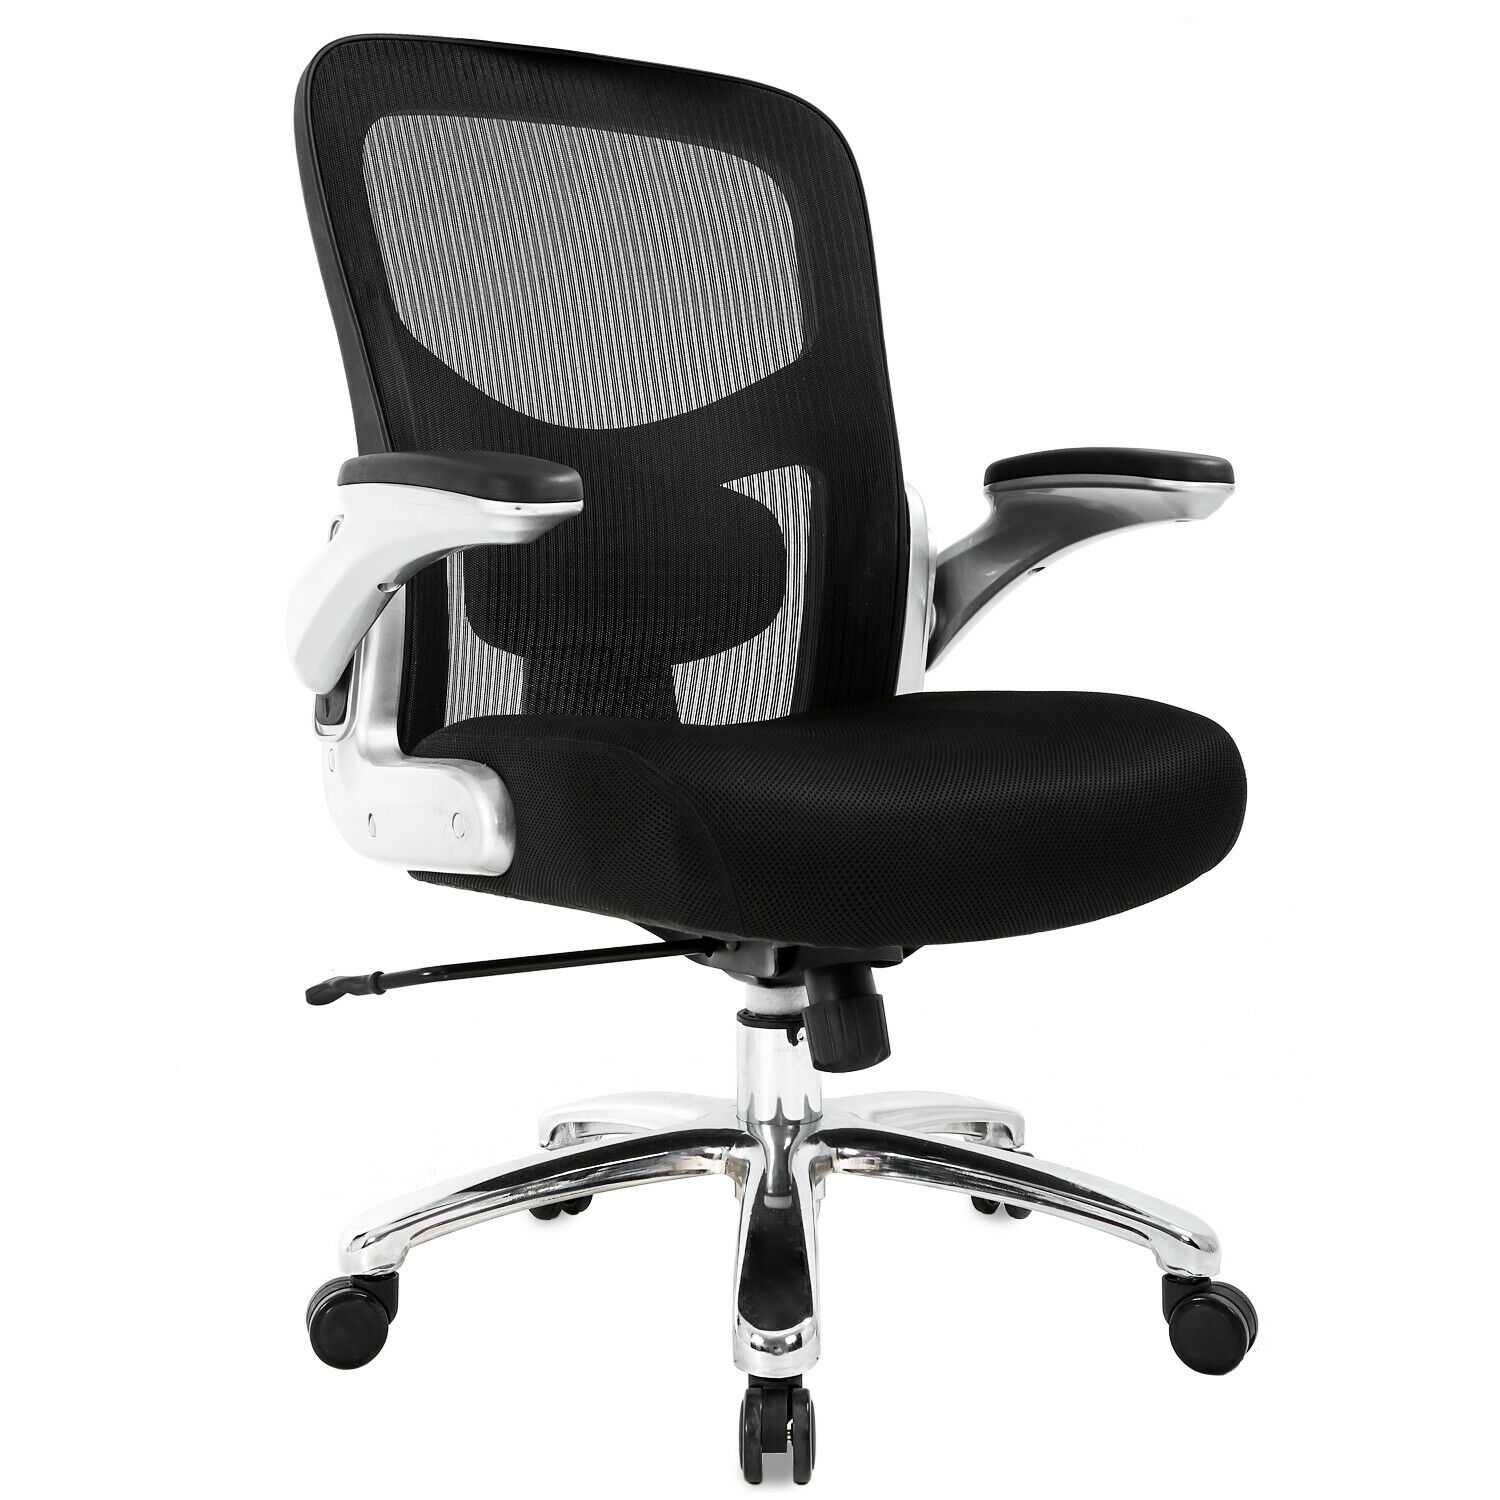 Big And Tall Office Chair Mesh Computer Chair Ergonomic Chair 500lbs Wide Seat With Lumbar Support Flip Up Arms Rolling Swivel High Back Desk Chair